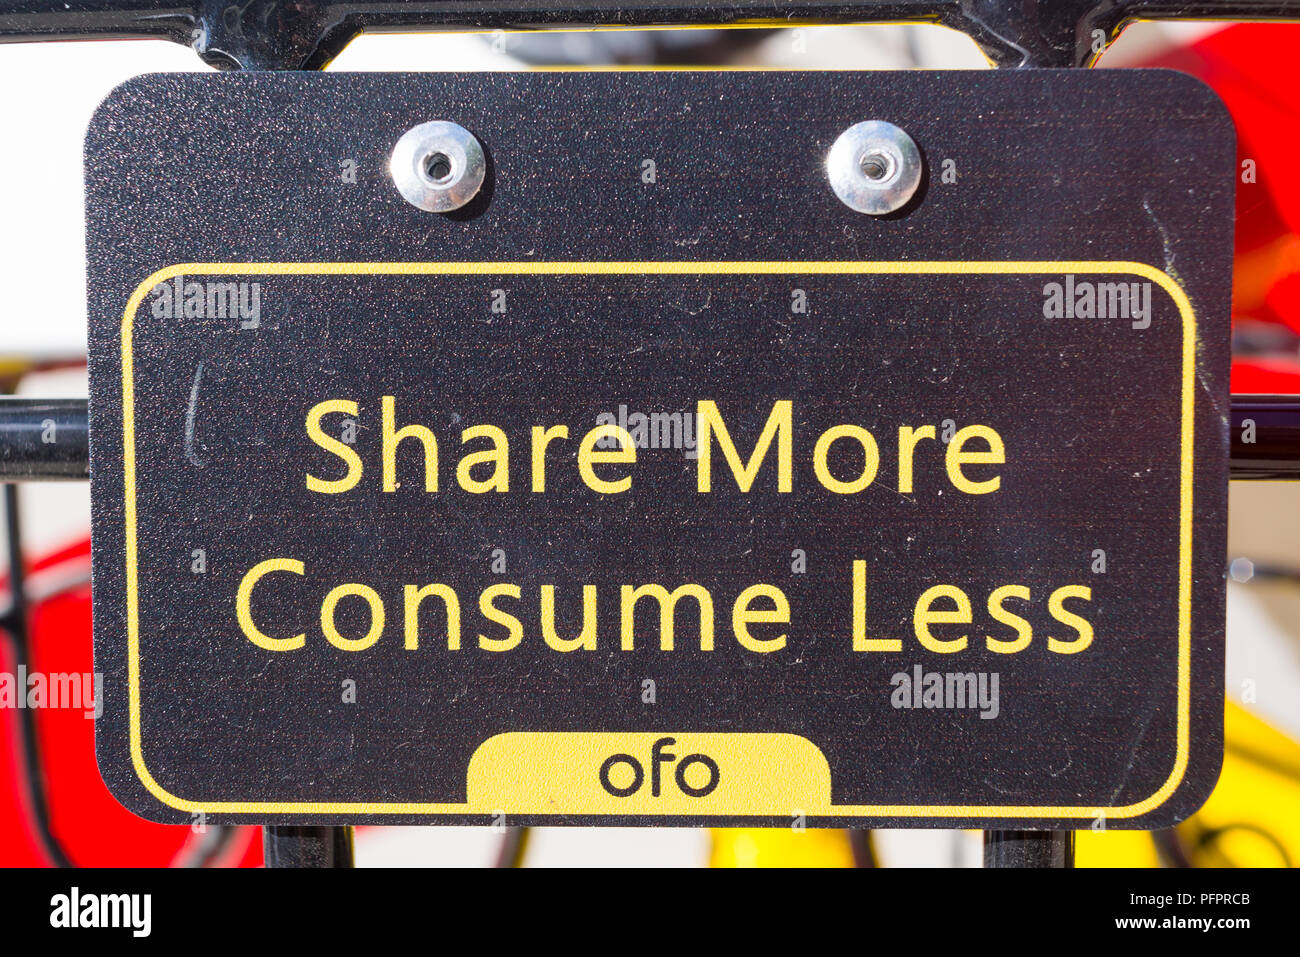 Share more consume less written on the front basket of an Ofo bike, the world's first and largest station-free bike share platform - Stock Image